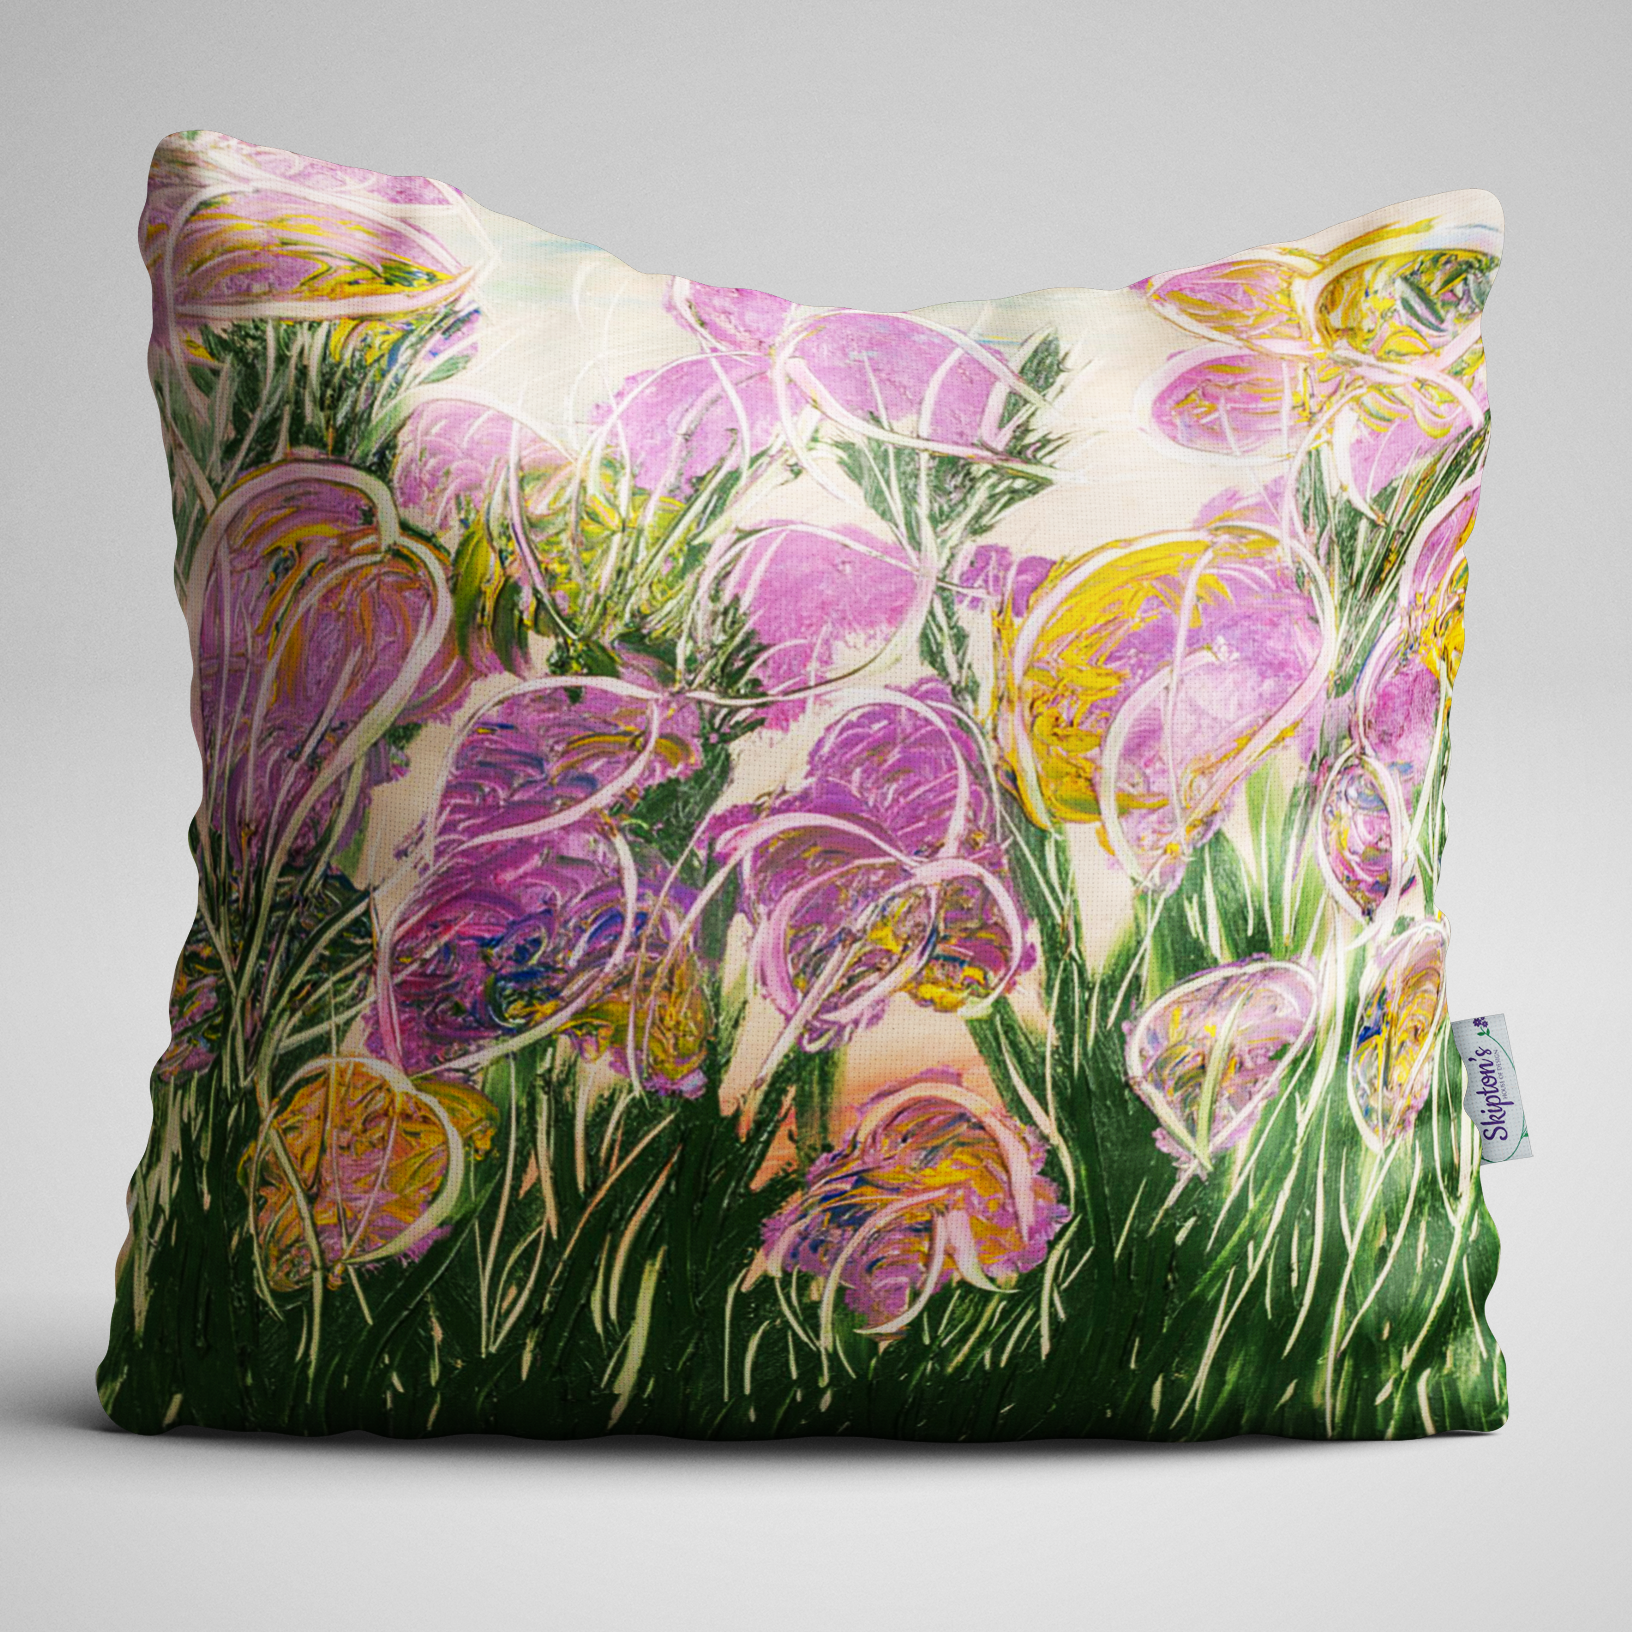 Bright Iris design on luxury velvet cushion